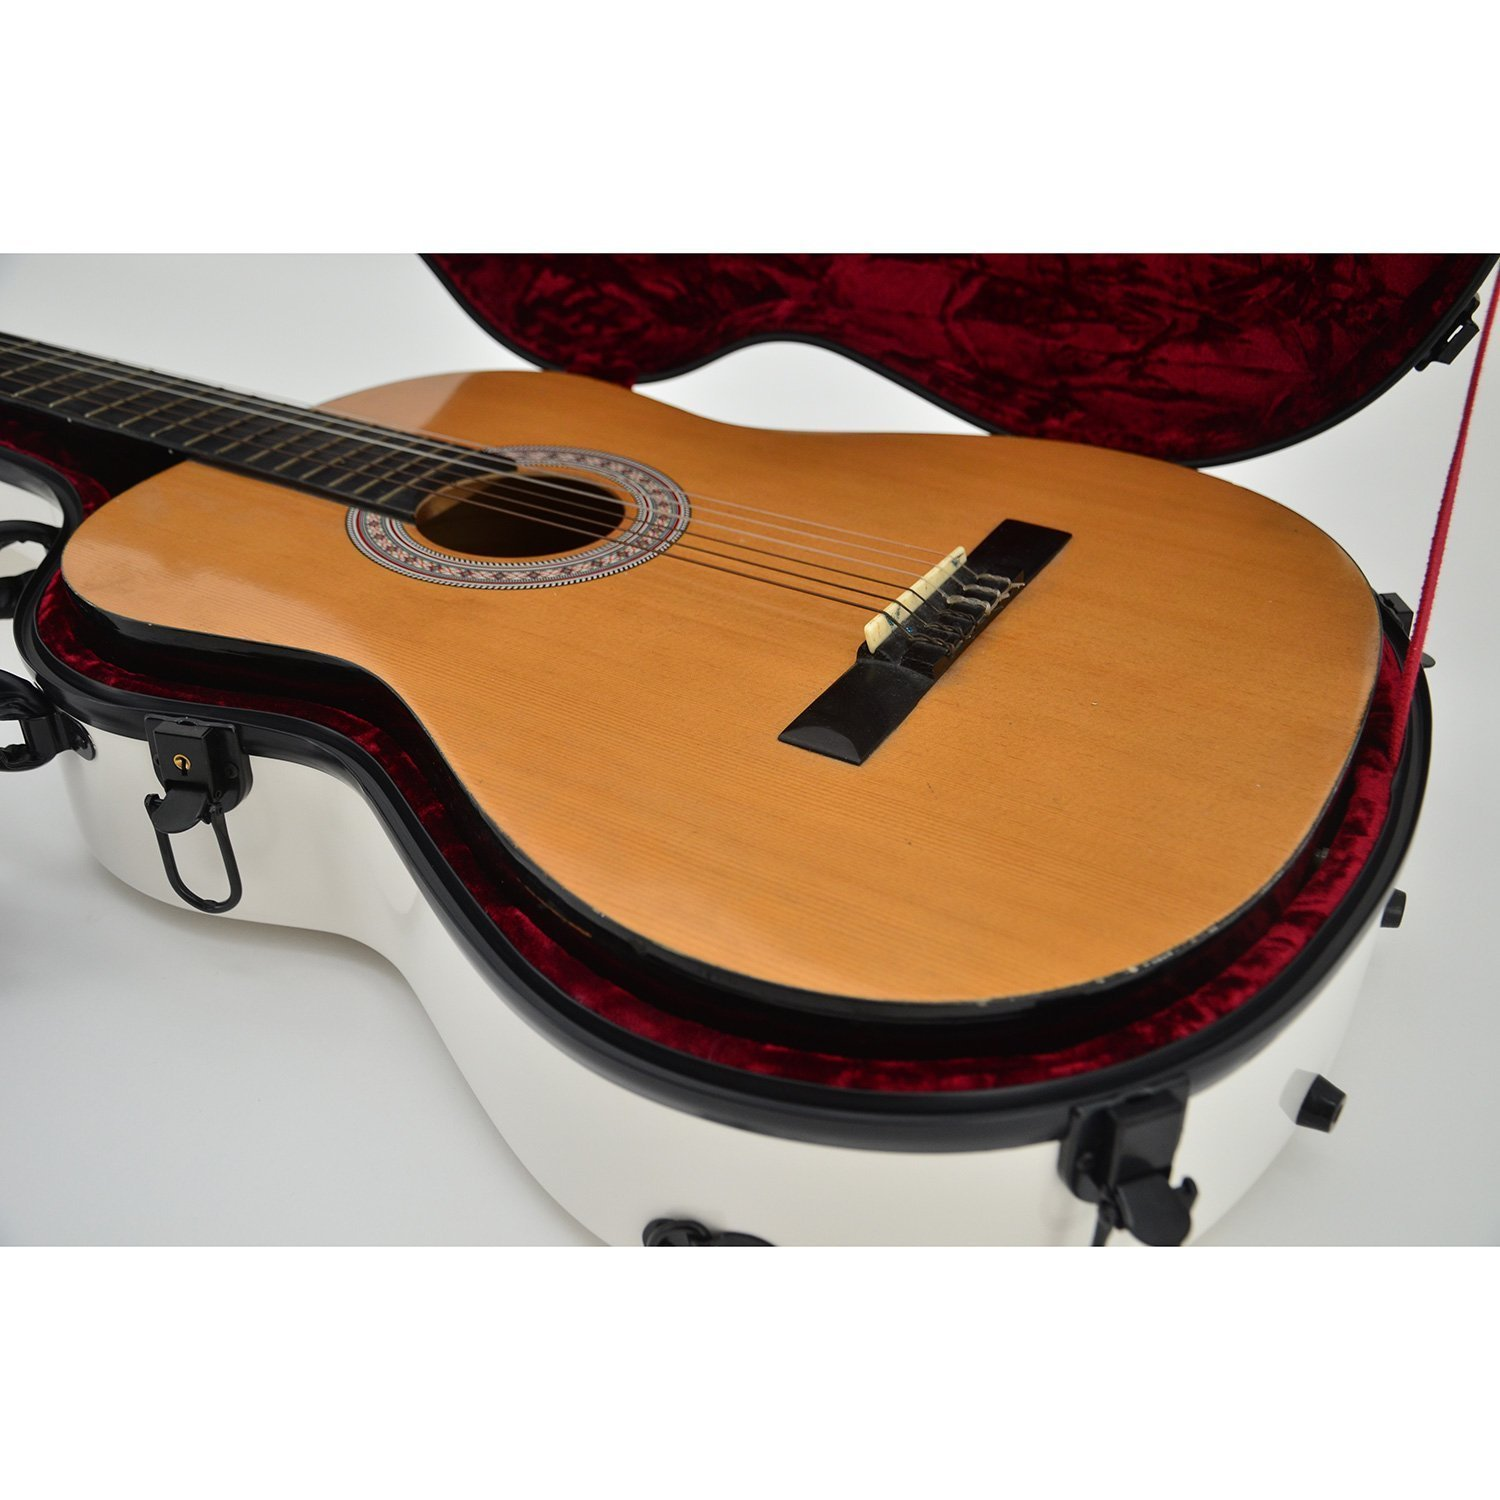 Great fit for classical guitars